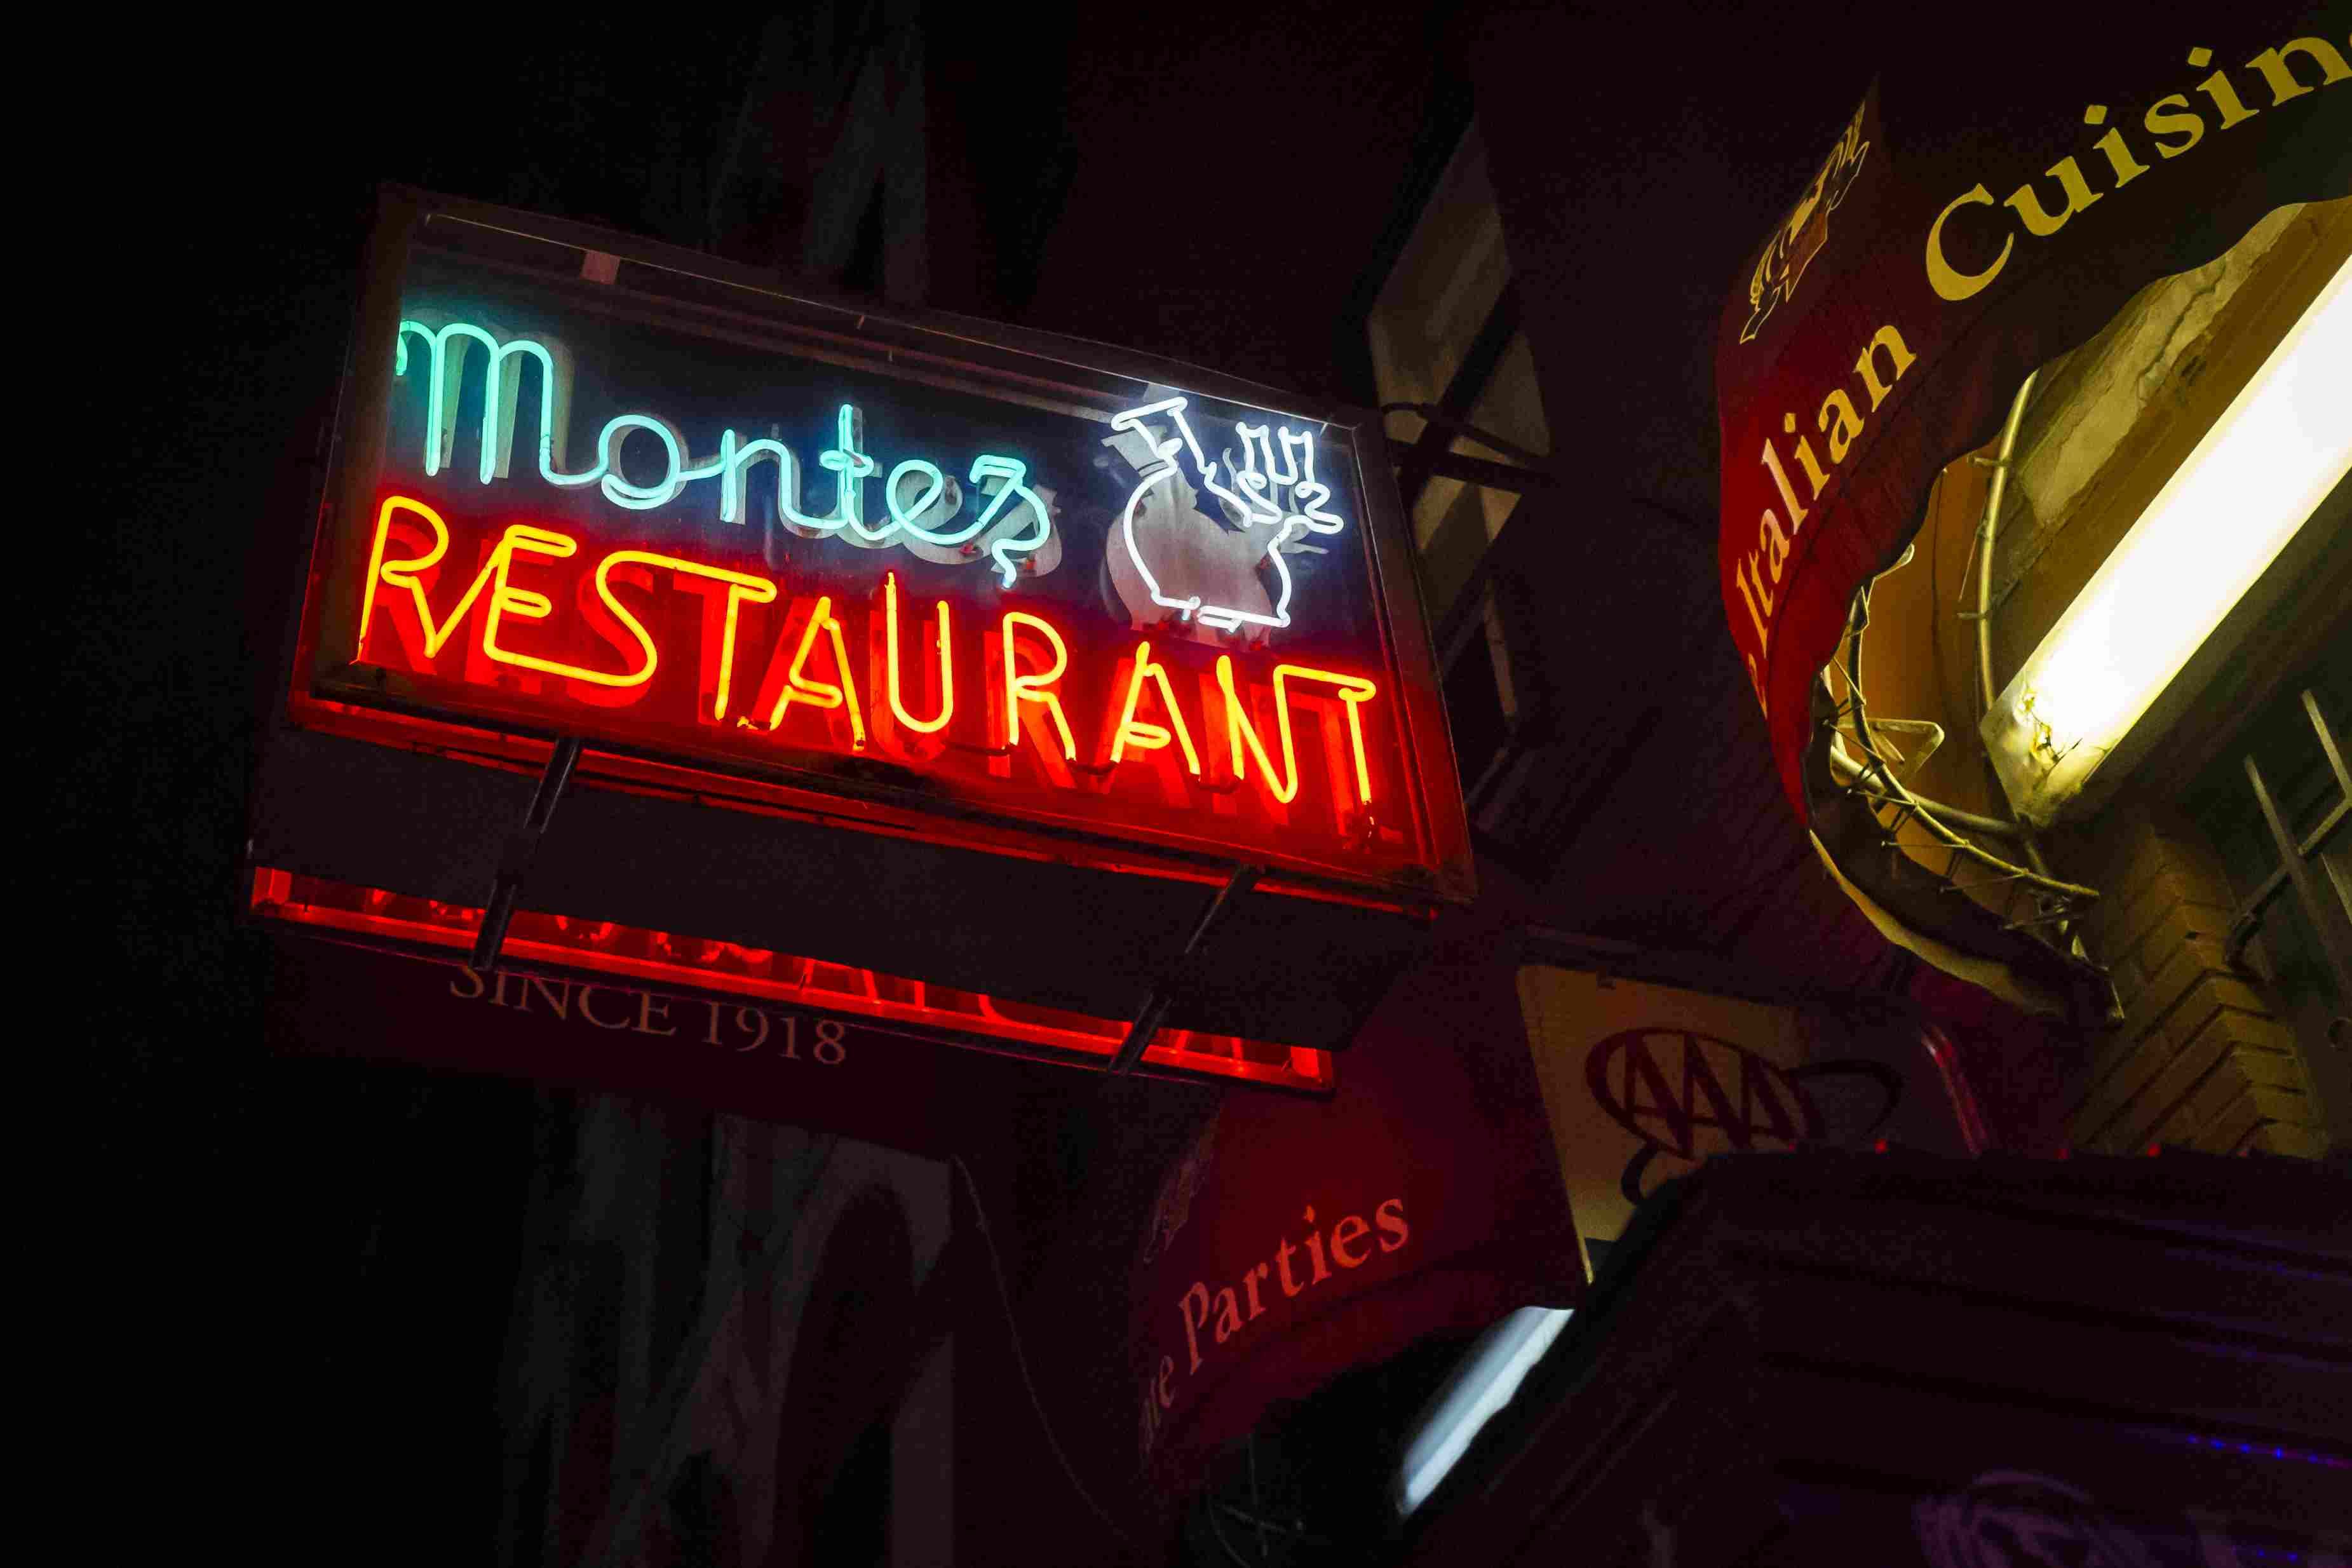 Neon sign at Monte's Restaurant lit up in New York.